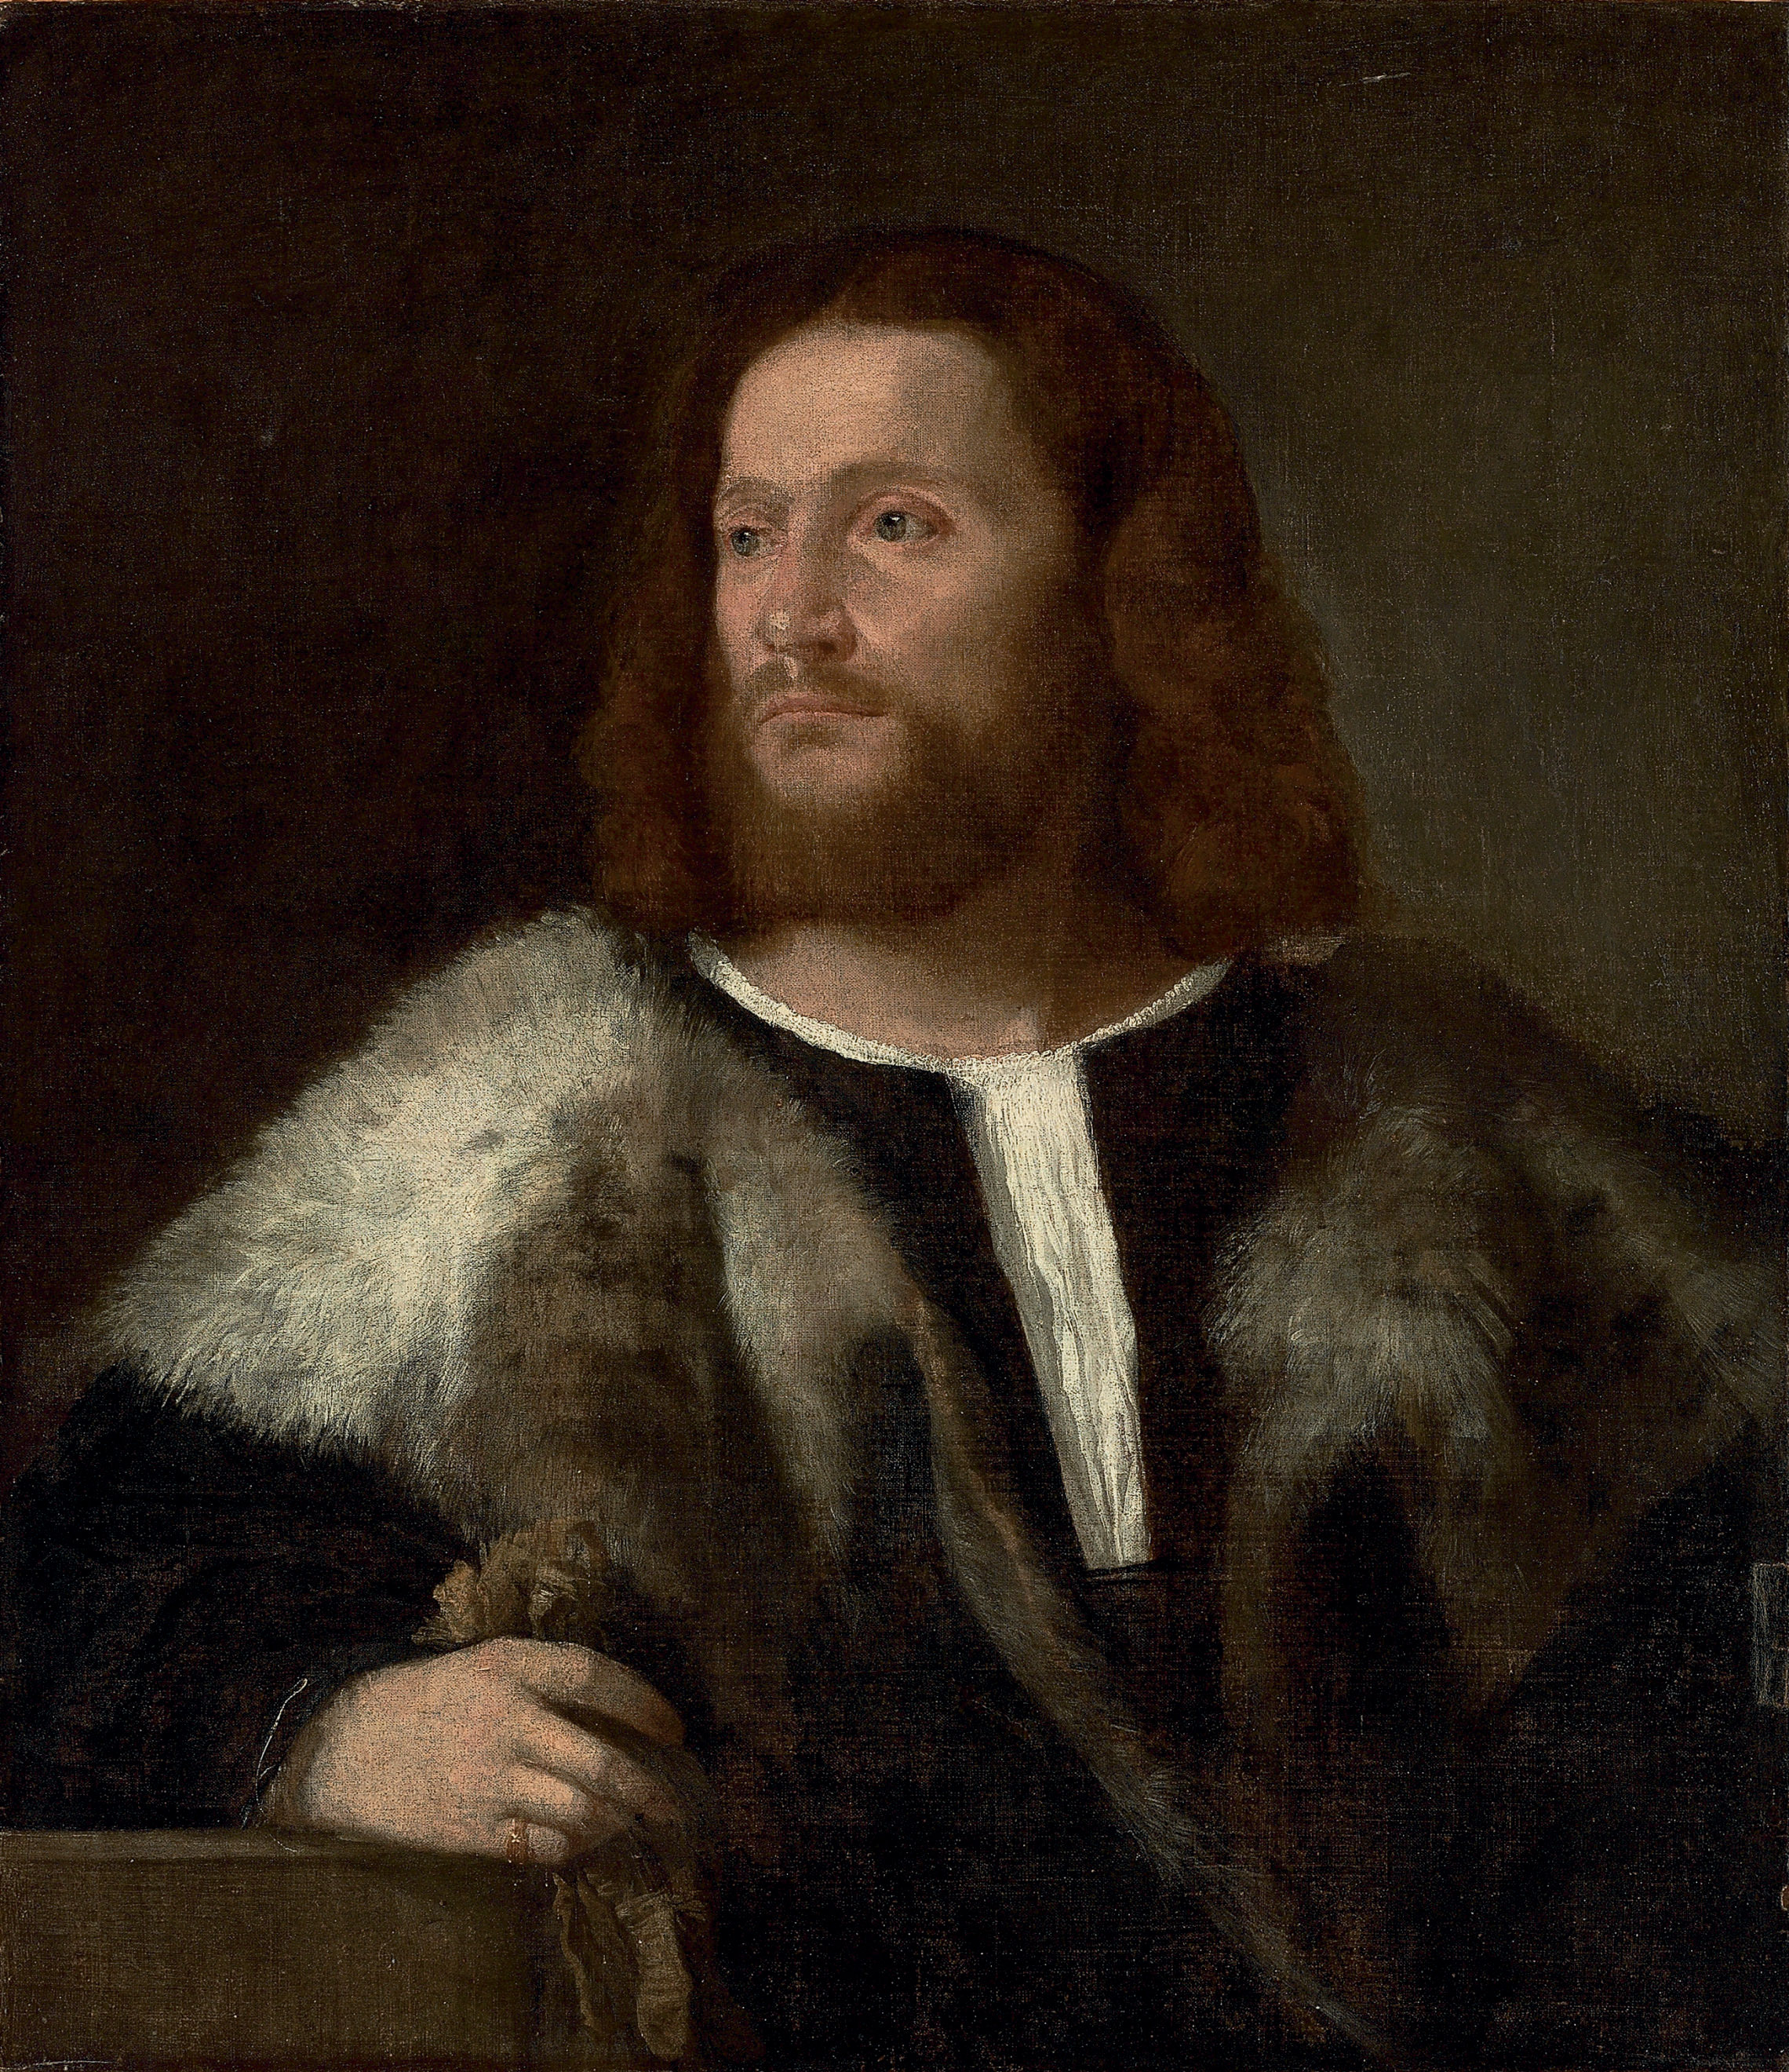 Portrait of a gentleman, half-length, in a fur mantle, holding gloves, his arm resting on a ledge